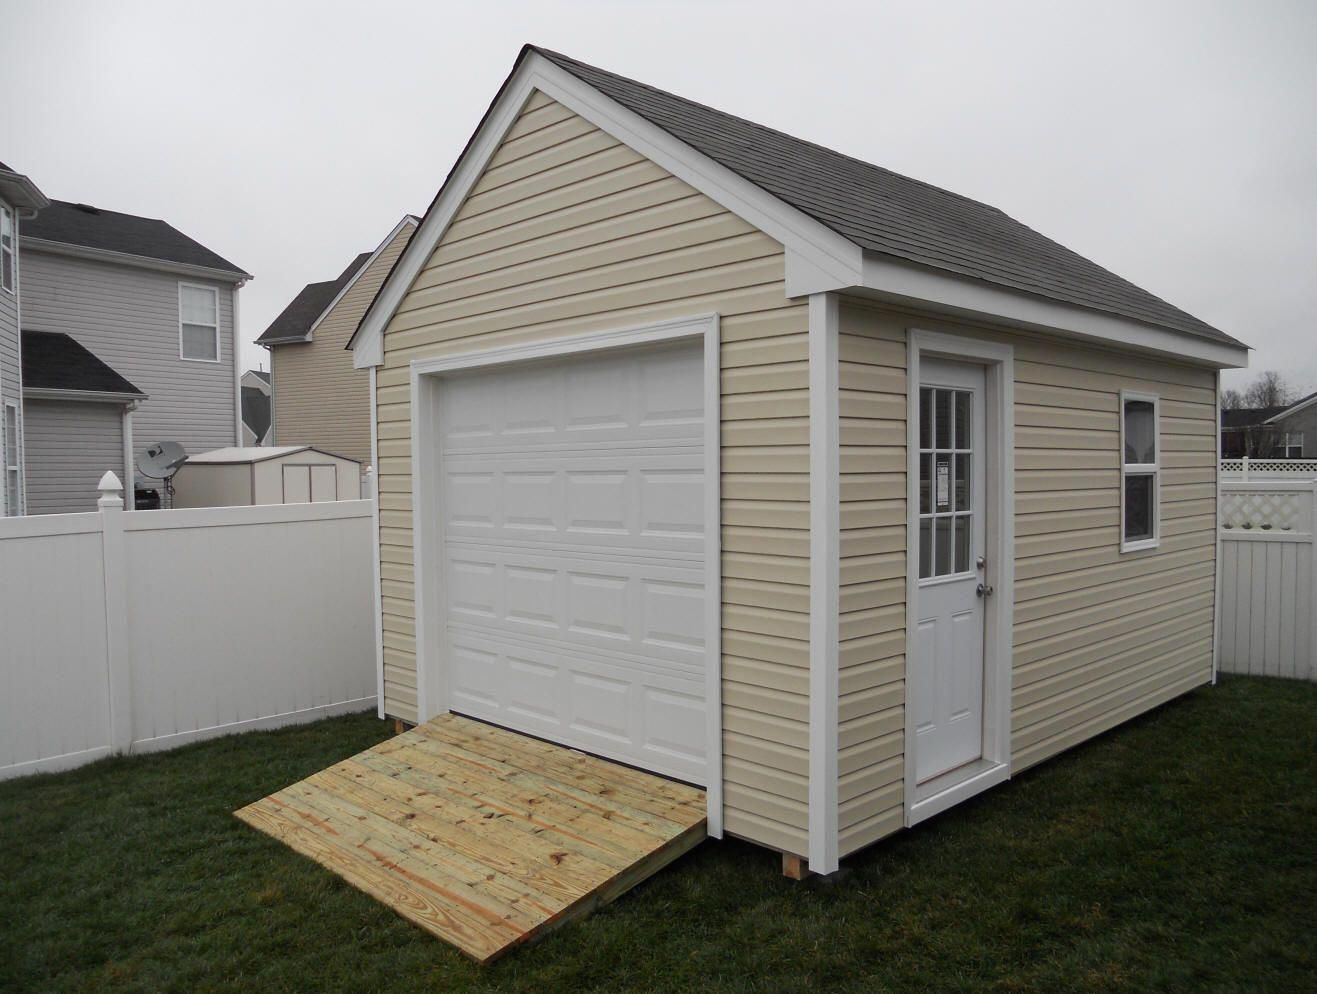 10x12 Shed Plans With Loft Google Search I Like The Garage Door Idea Could We Reuse Our Garage Door Into The Wor Shed With Loft 10x12 Shed Plans Shed Plans